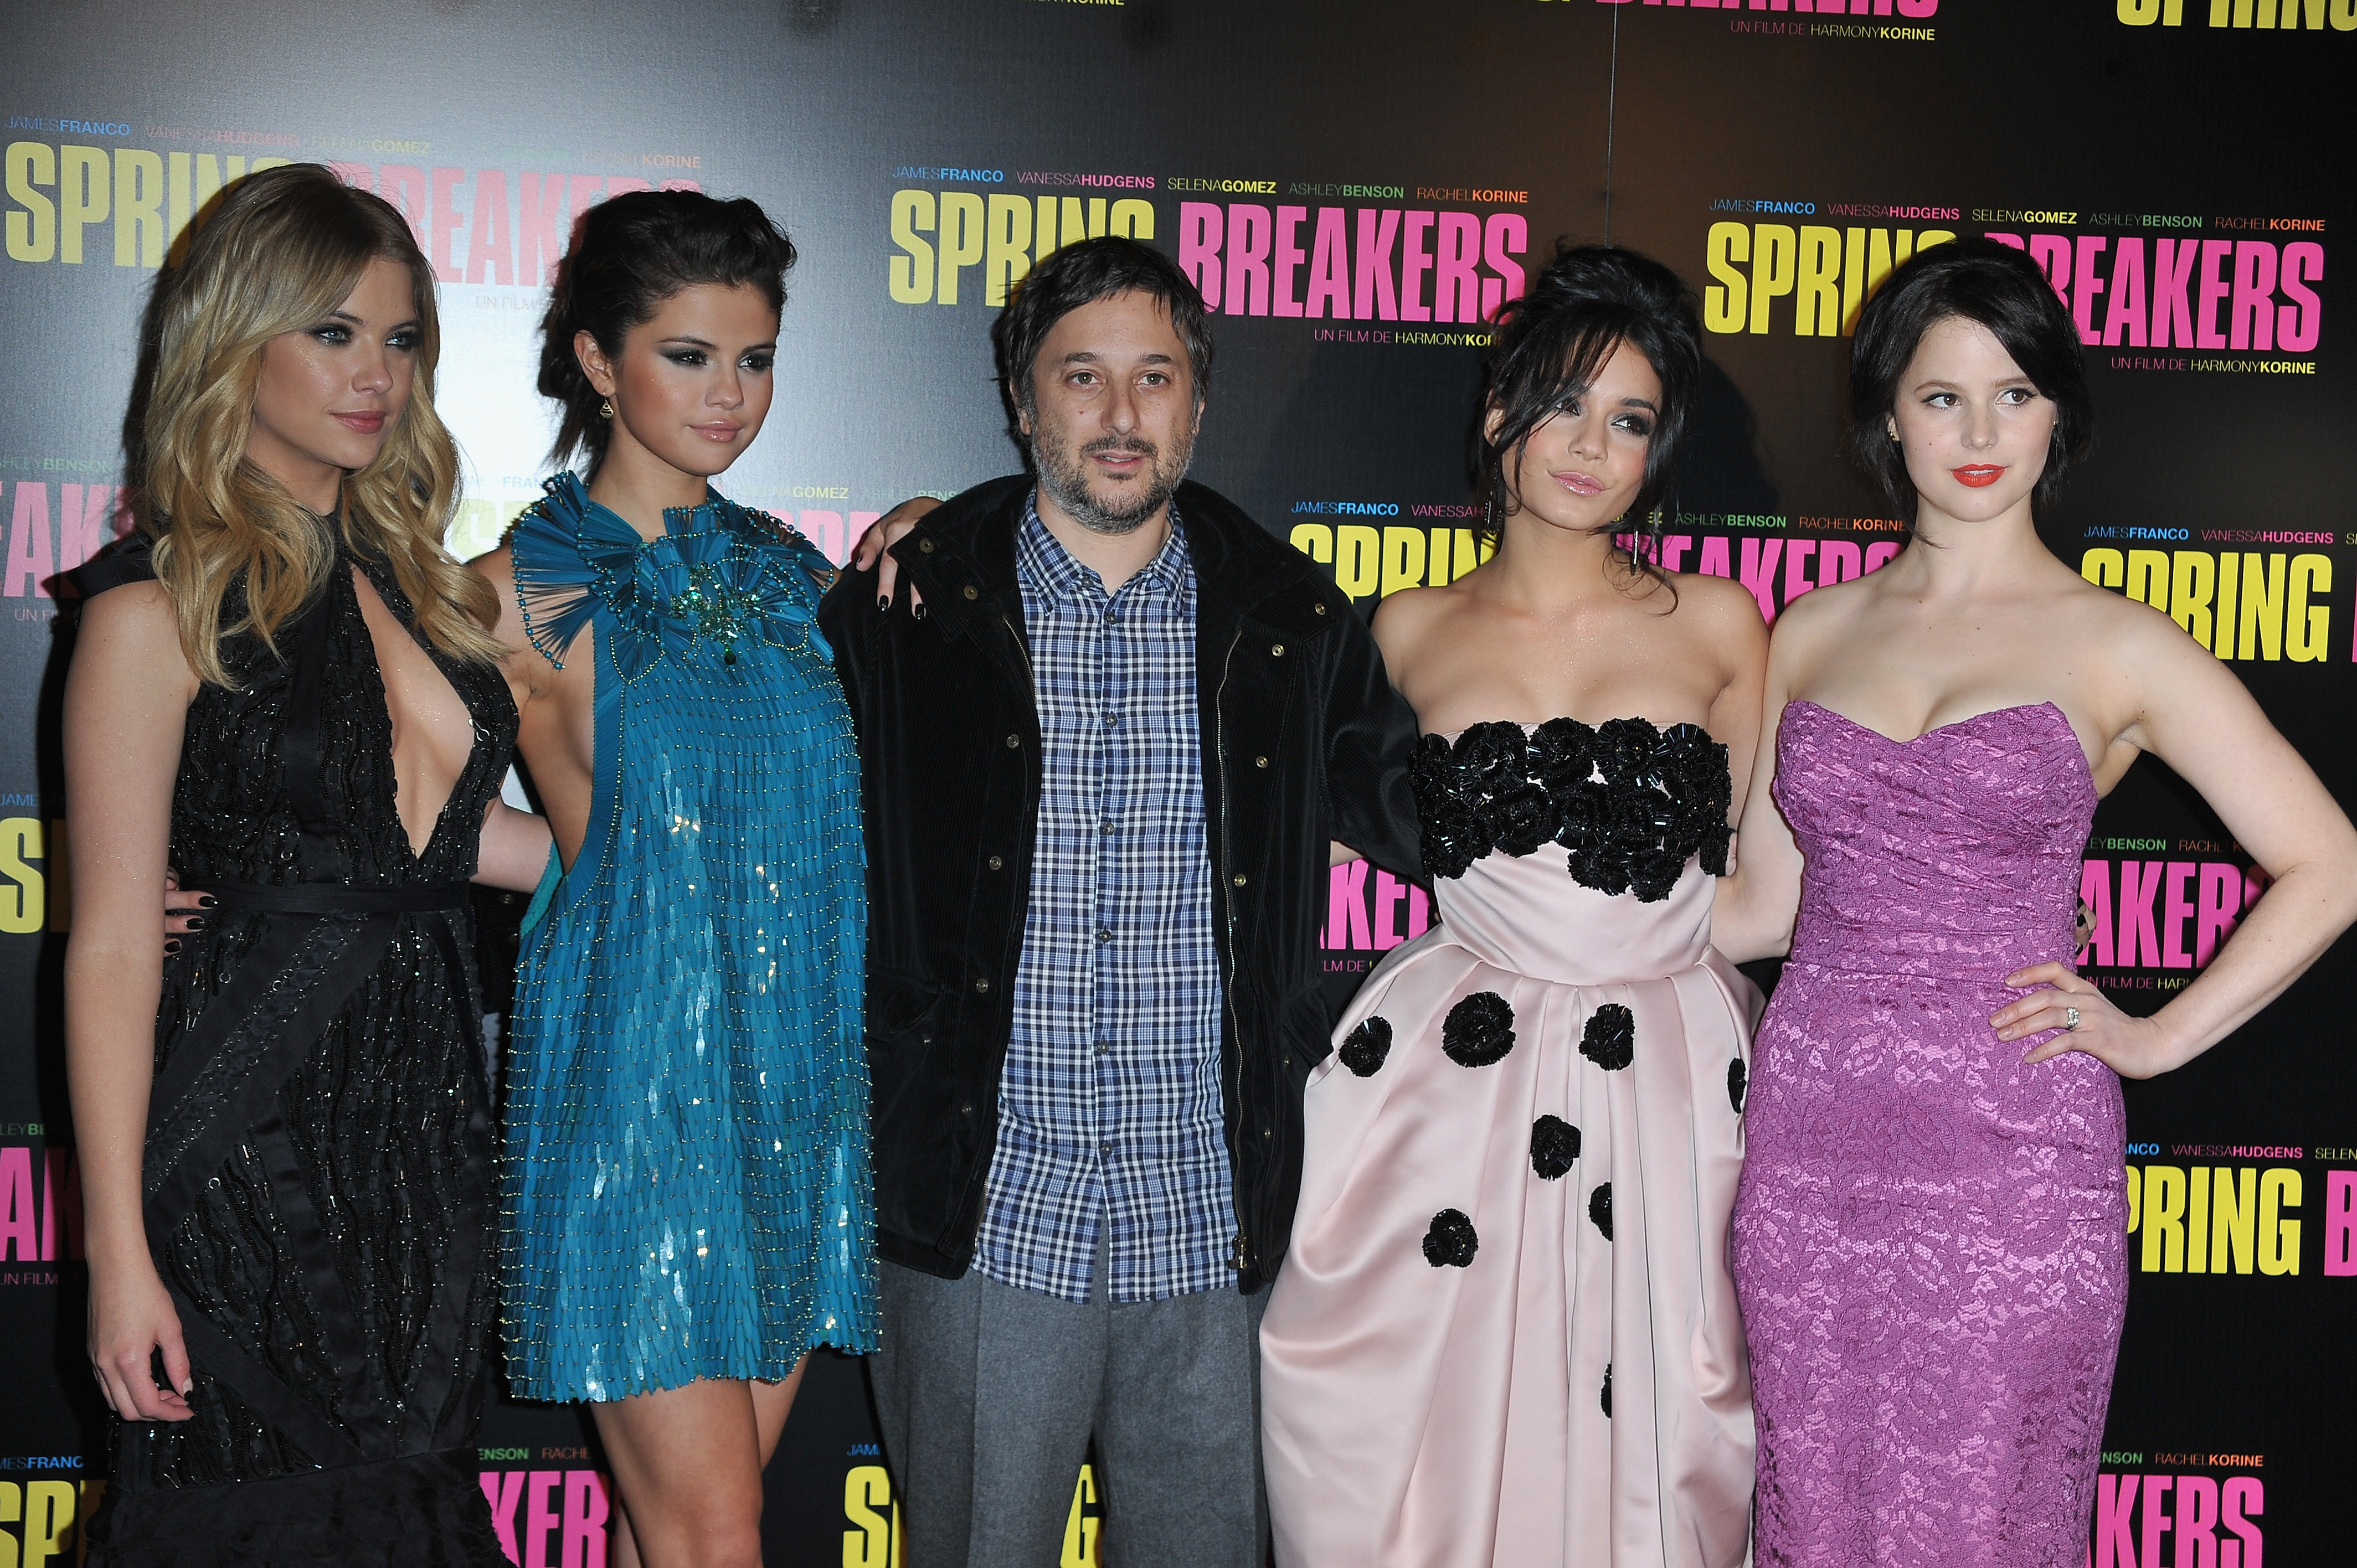 Ashley Benson, Selena Gomez, Vanessa Hudgens, and Rachel Korine posed with director and writer Harmony Korine at the Paris premiere of Spring Breakers.